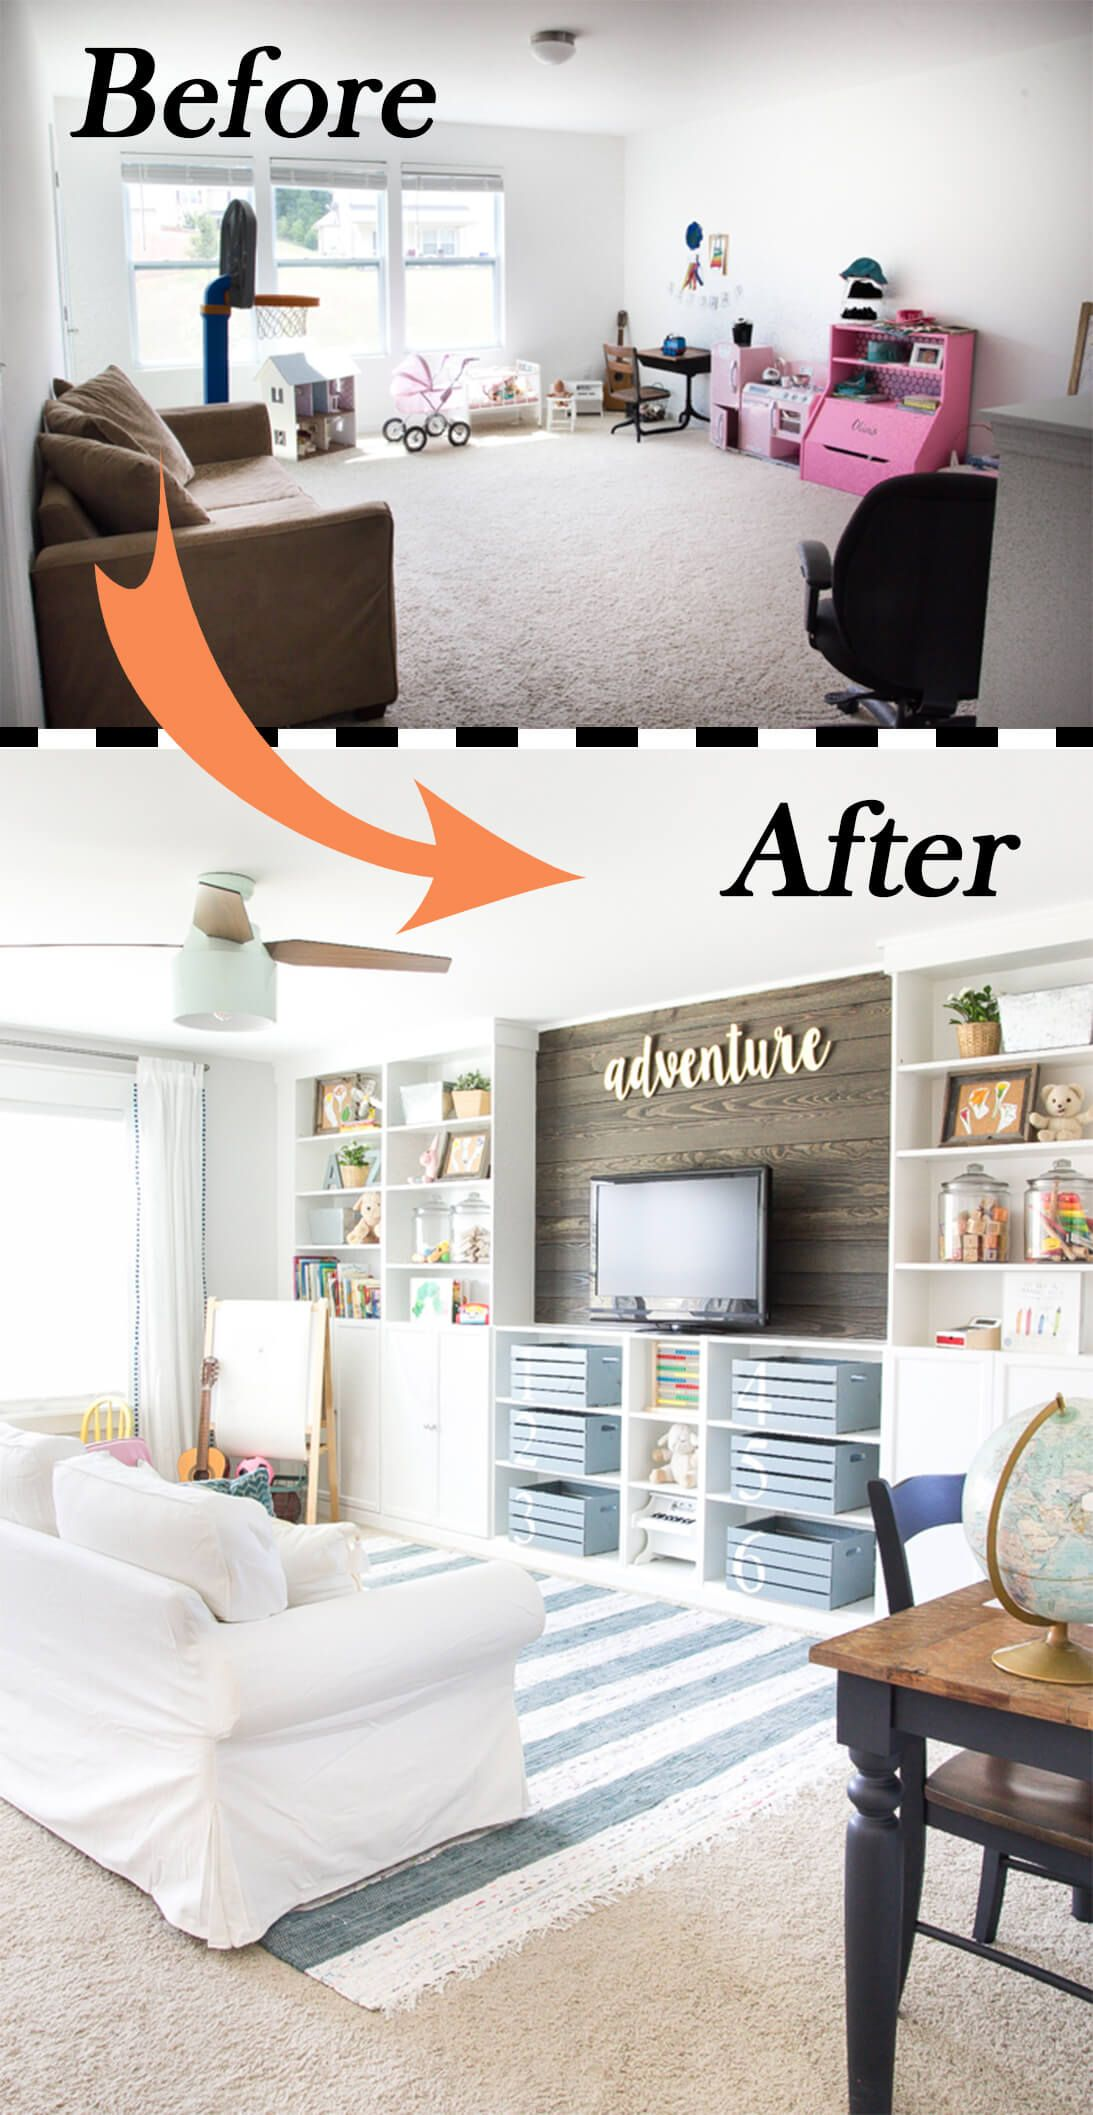 Before and After: 26 Budget Friendly Living Room Makeovers to Inspire You |  Farmhouse playroom, Eclectic farmhouse, Home